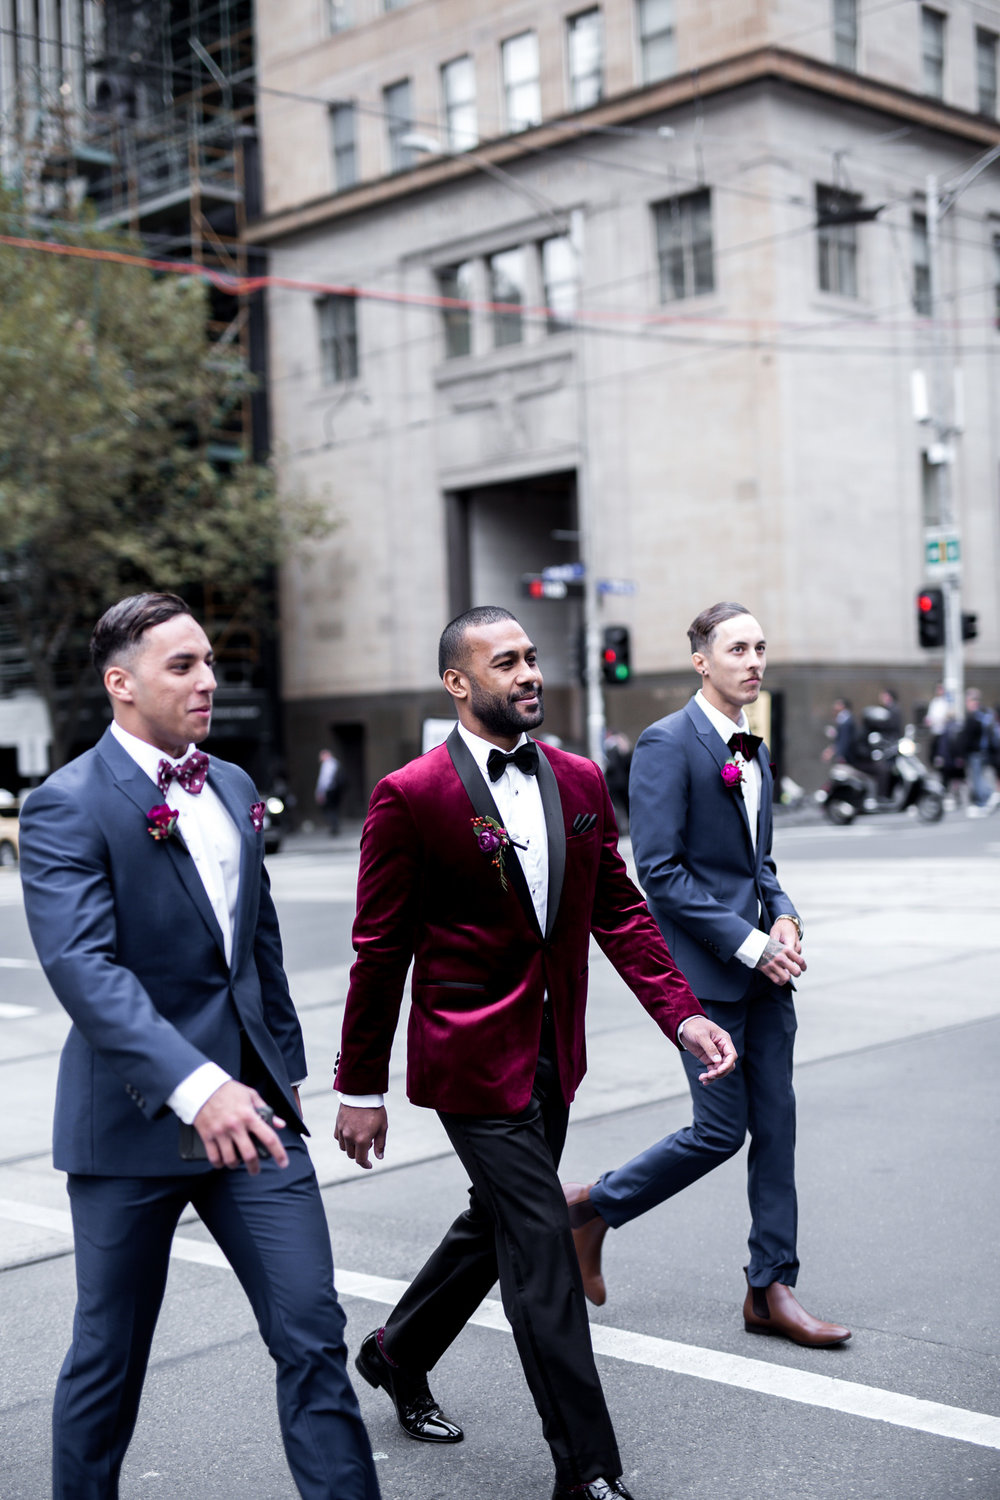 mr-theodore_white-vine-photography_same-sex-wedding-directory19.jpg